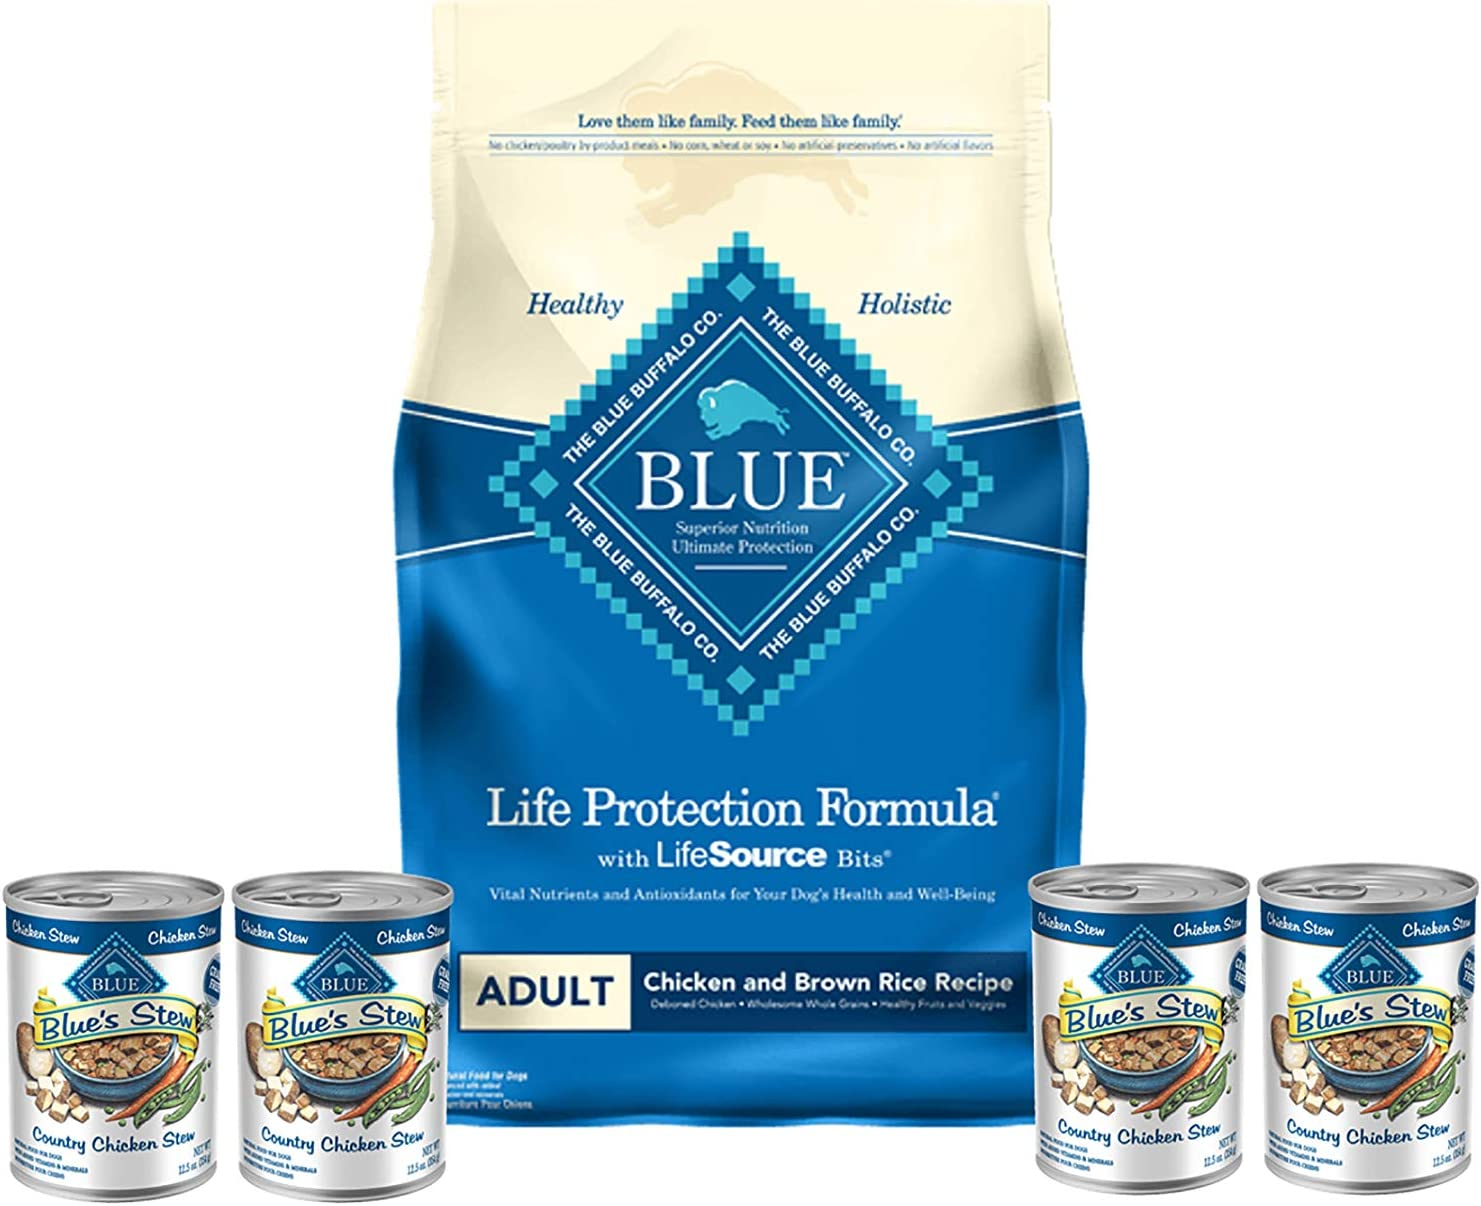 Blue Dry Dog Food Life Protection Formula Natural Adult Chicken and Brown Rice 15 lb Bag 4 cans Country Chicken Stew 12.5 oz Plus 1 Lid to Reseal Canned Food